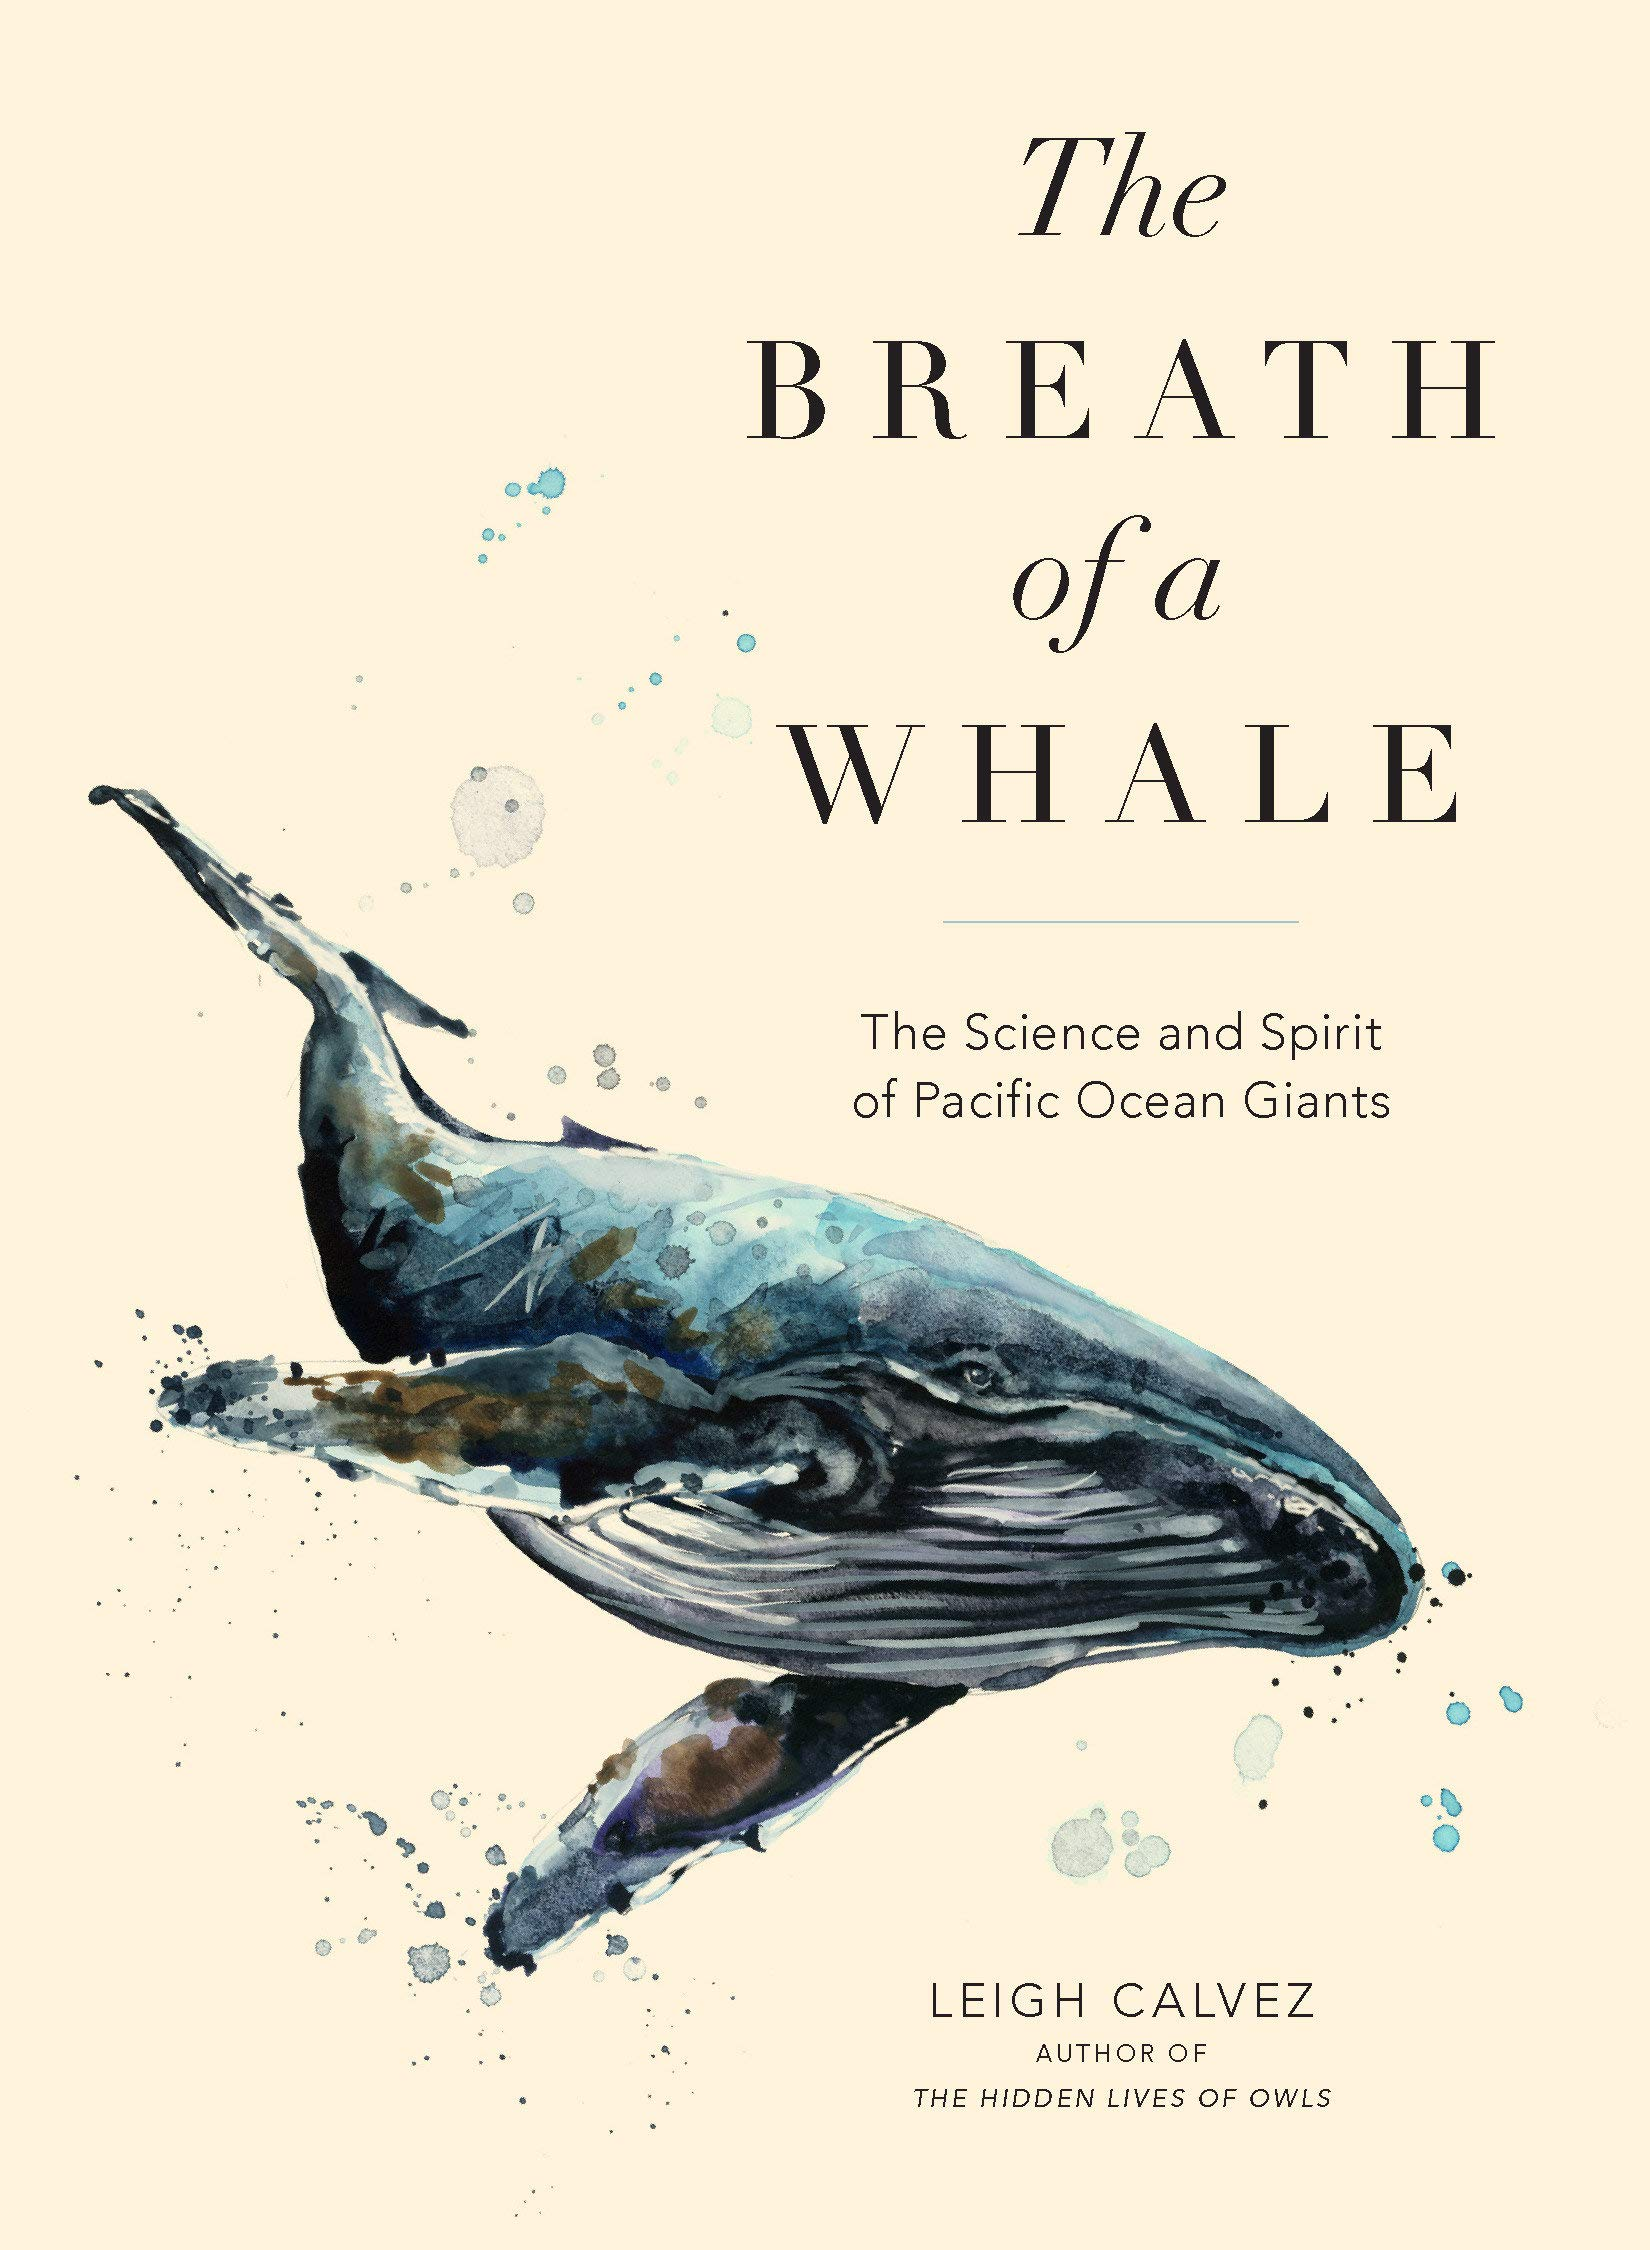 The Breath of a Whale The Science and Spirit of Pacific Ocean Giants